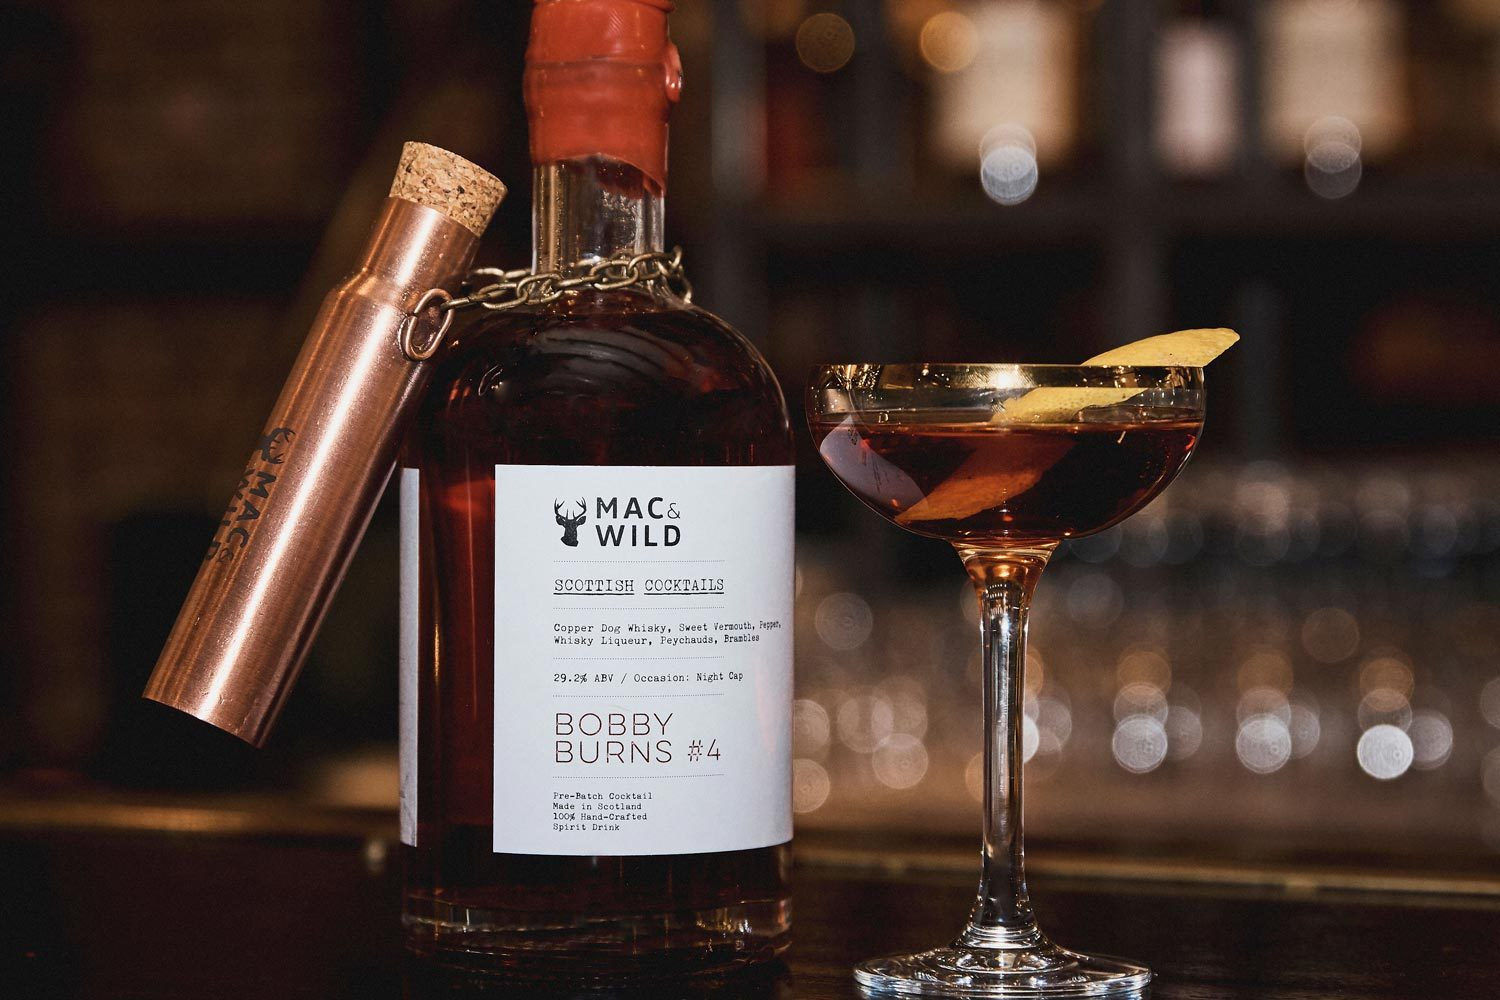 Bobby Burns #4 Manhattan - Mac & Wild